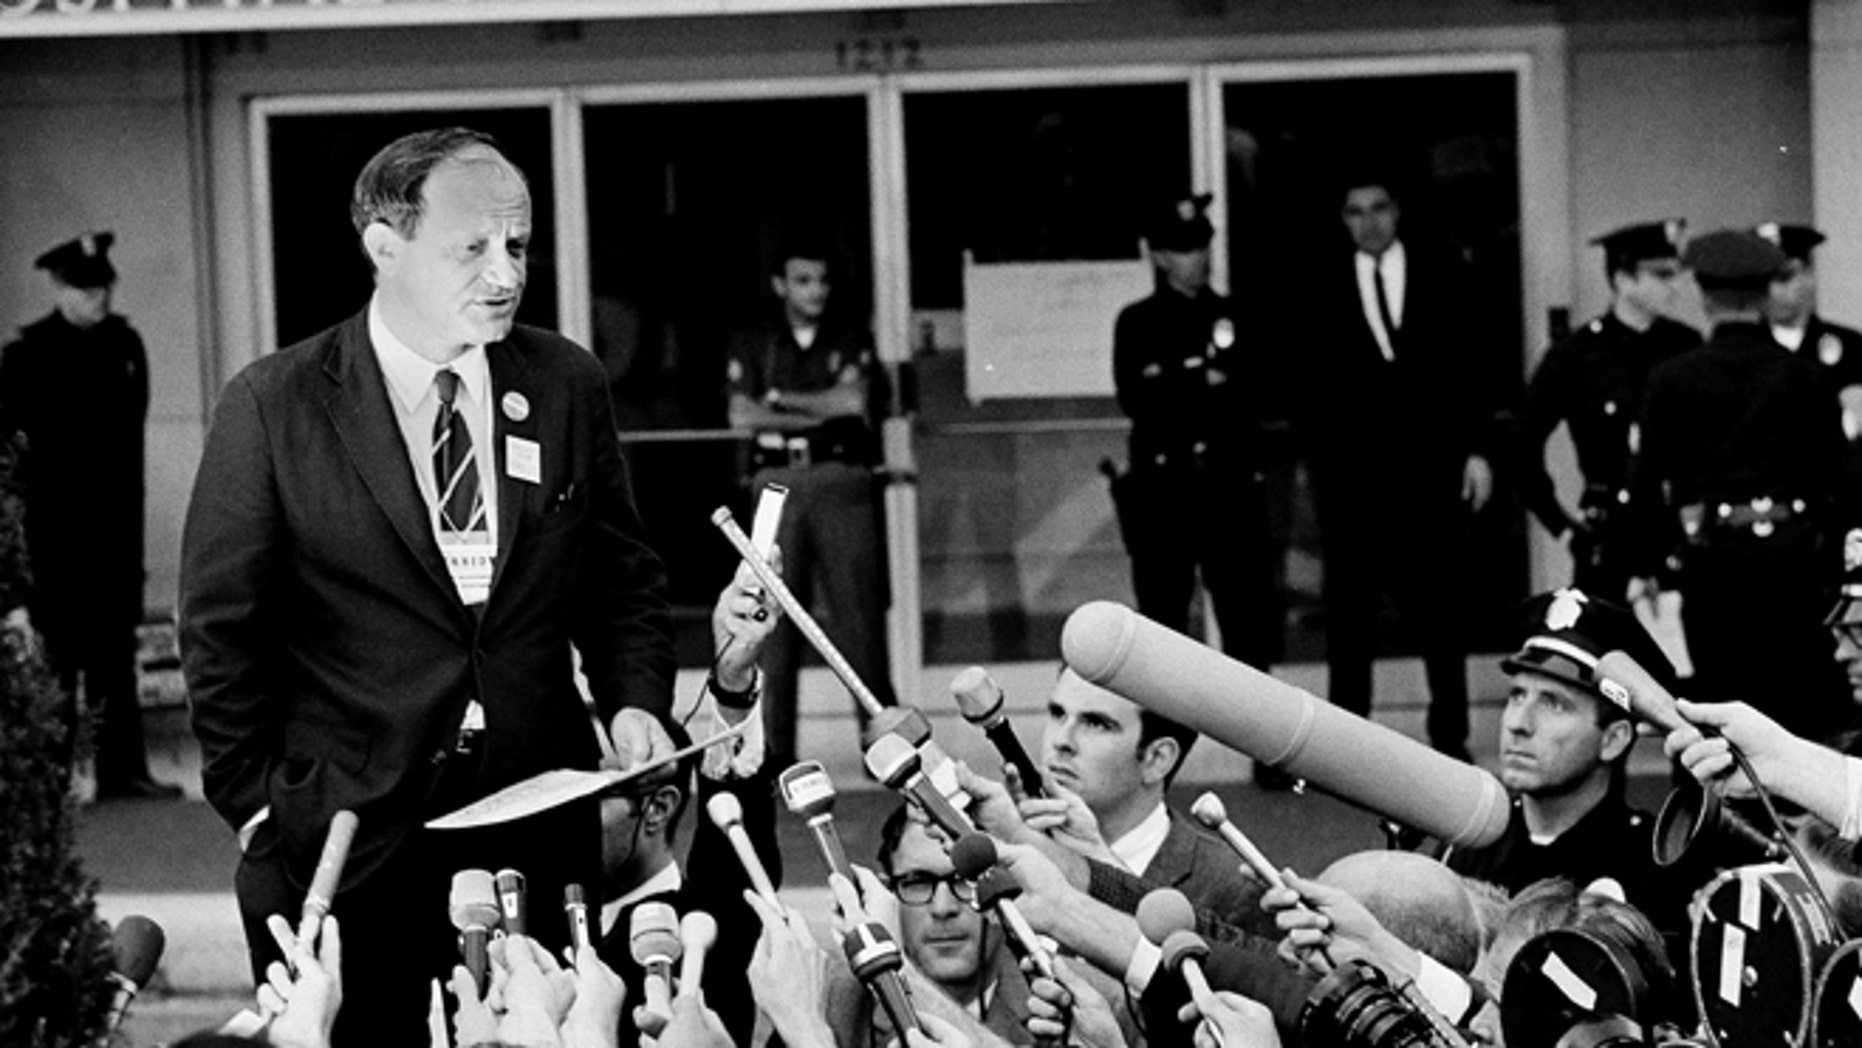 """June 5, 1968: Frank Mankiewicz, Sen. Robert F. Kennedy's press secretary, tells a news conference outside Good Samaritan hospital in Los Angeles, that Kennedy emerged from three hours of surgery in """"extremely critical condition."""""""